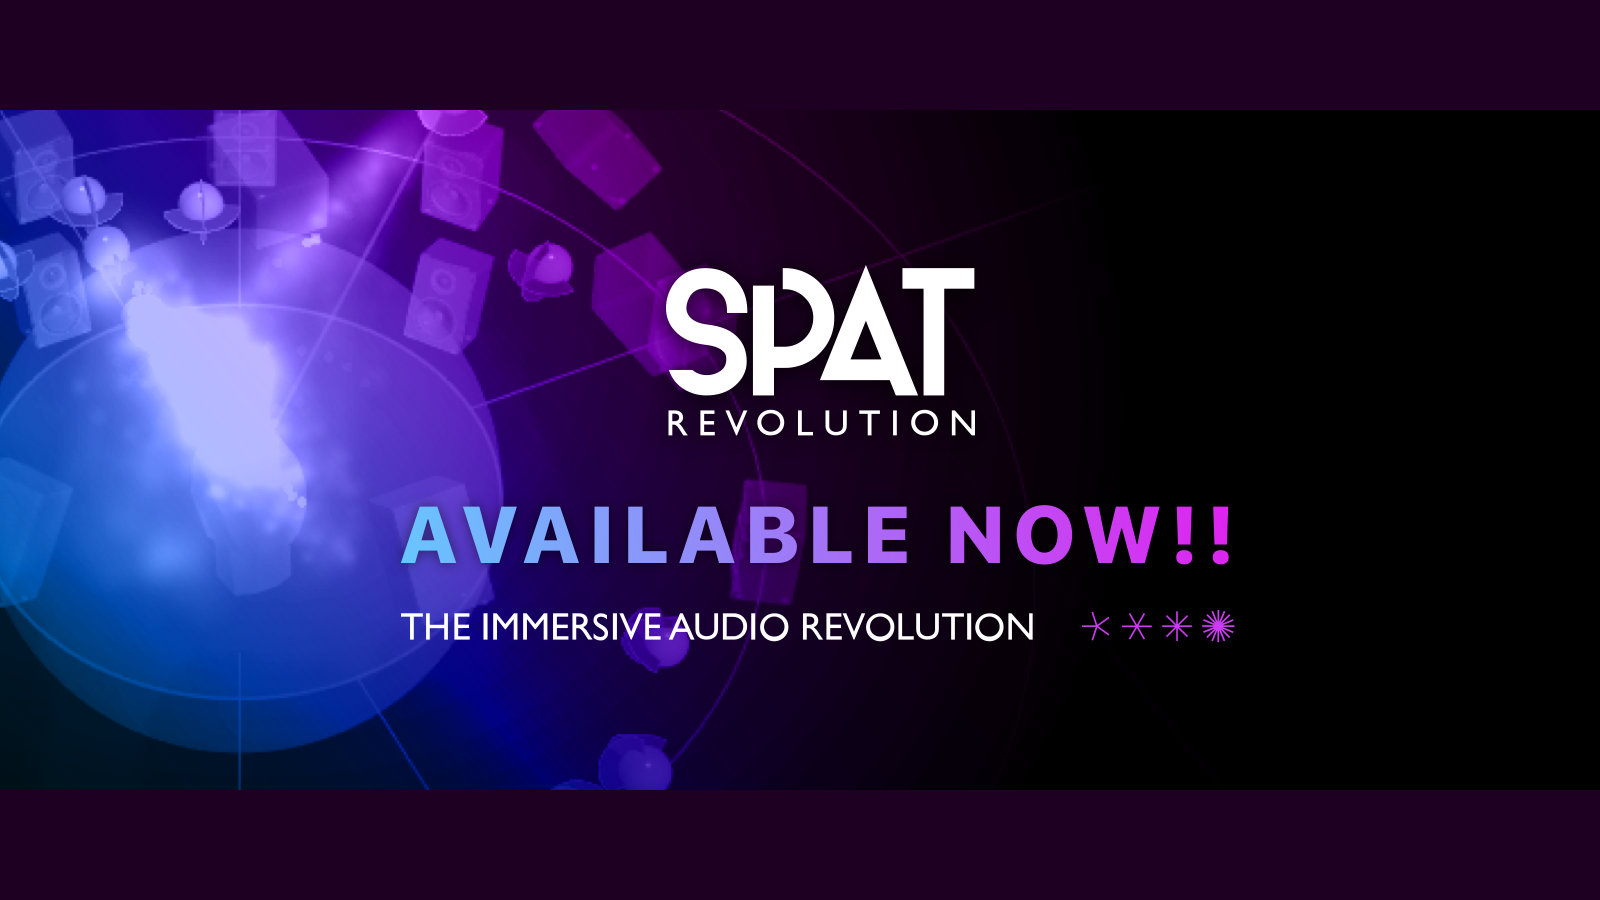 spat_available_now_w1600